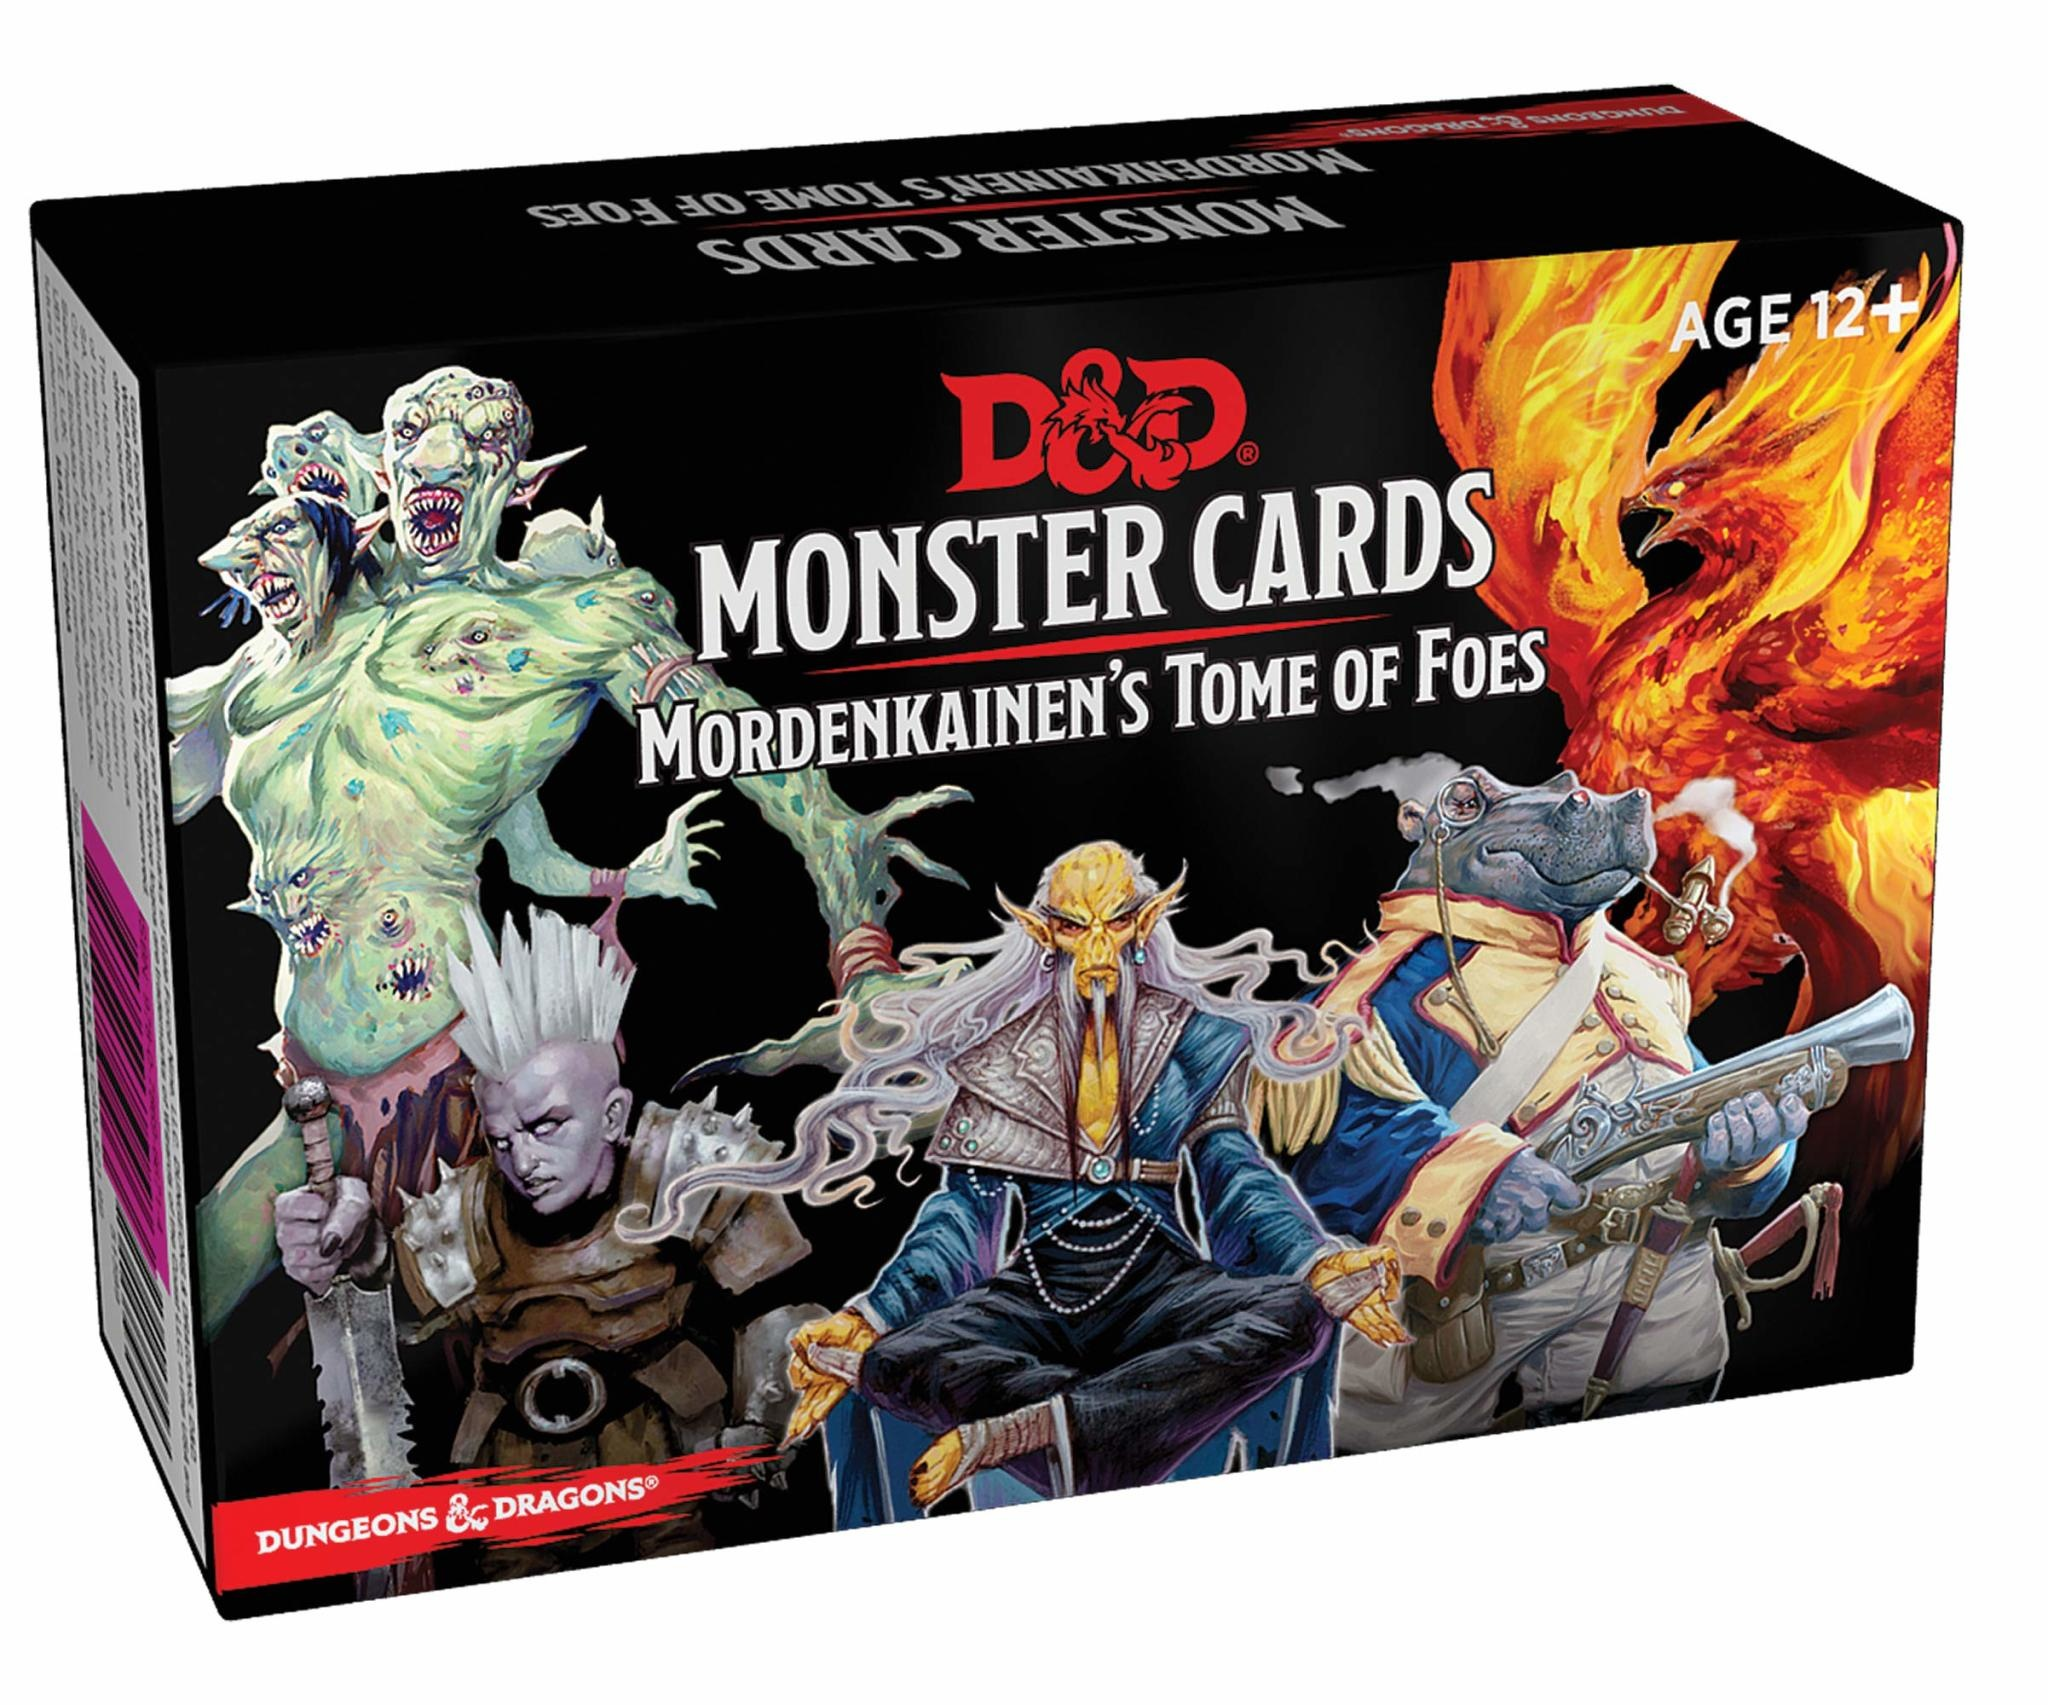 Gale Force 9 Dungeons and Dragons RPG: Monster Cards- Mordenkainen's Tome of Foes Deck